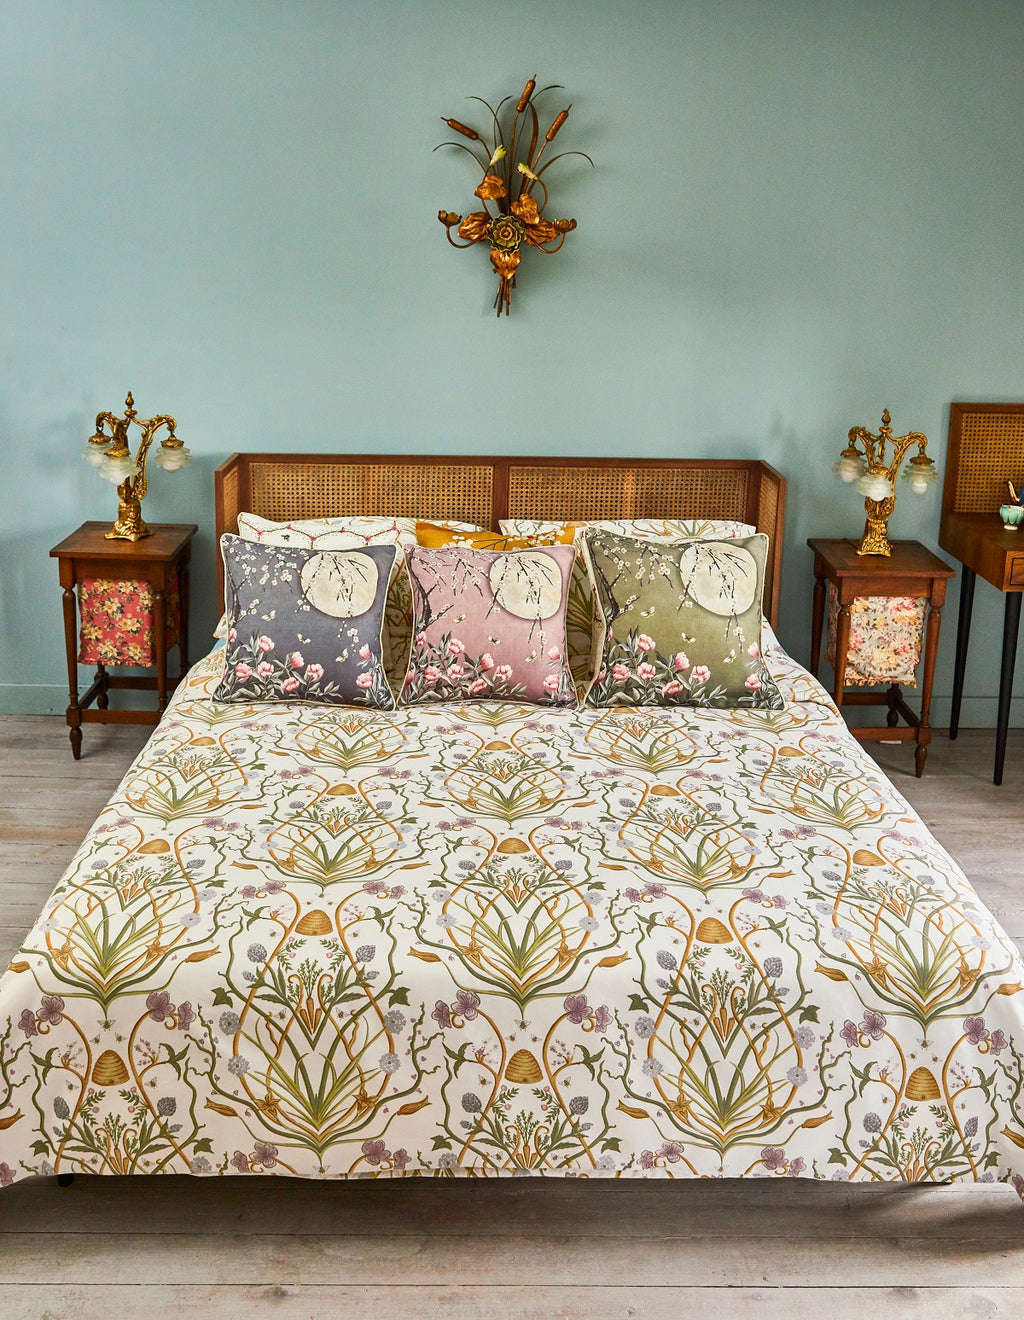 The Chateau Collection Potagerie Cream Quilt Set by Angel Strawbridge